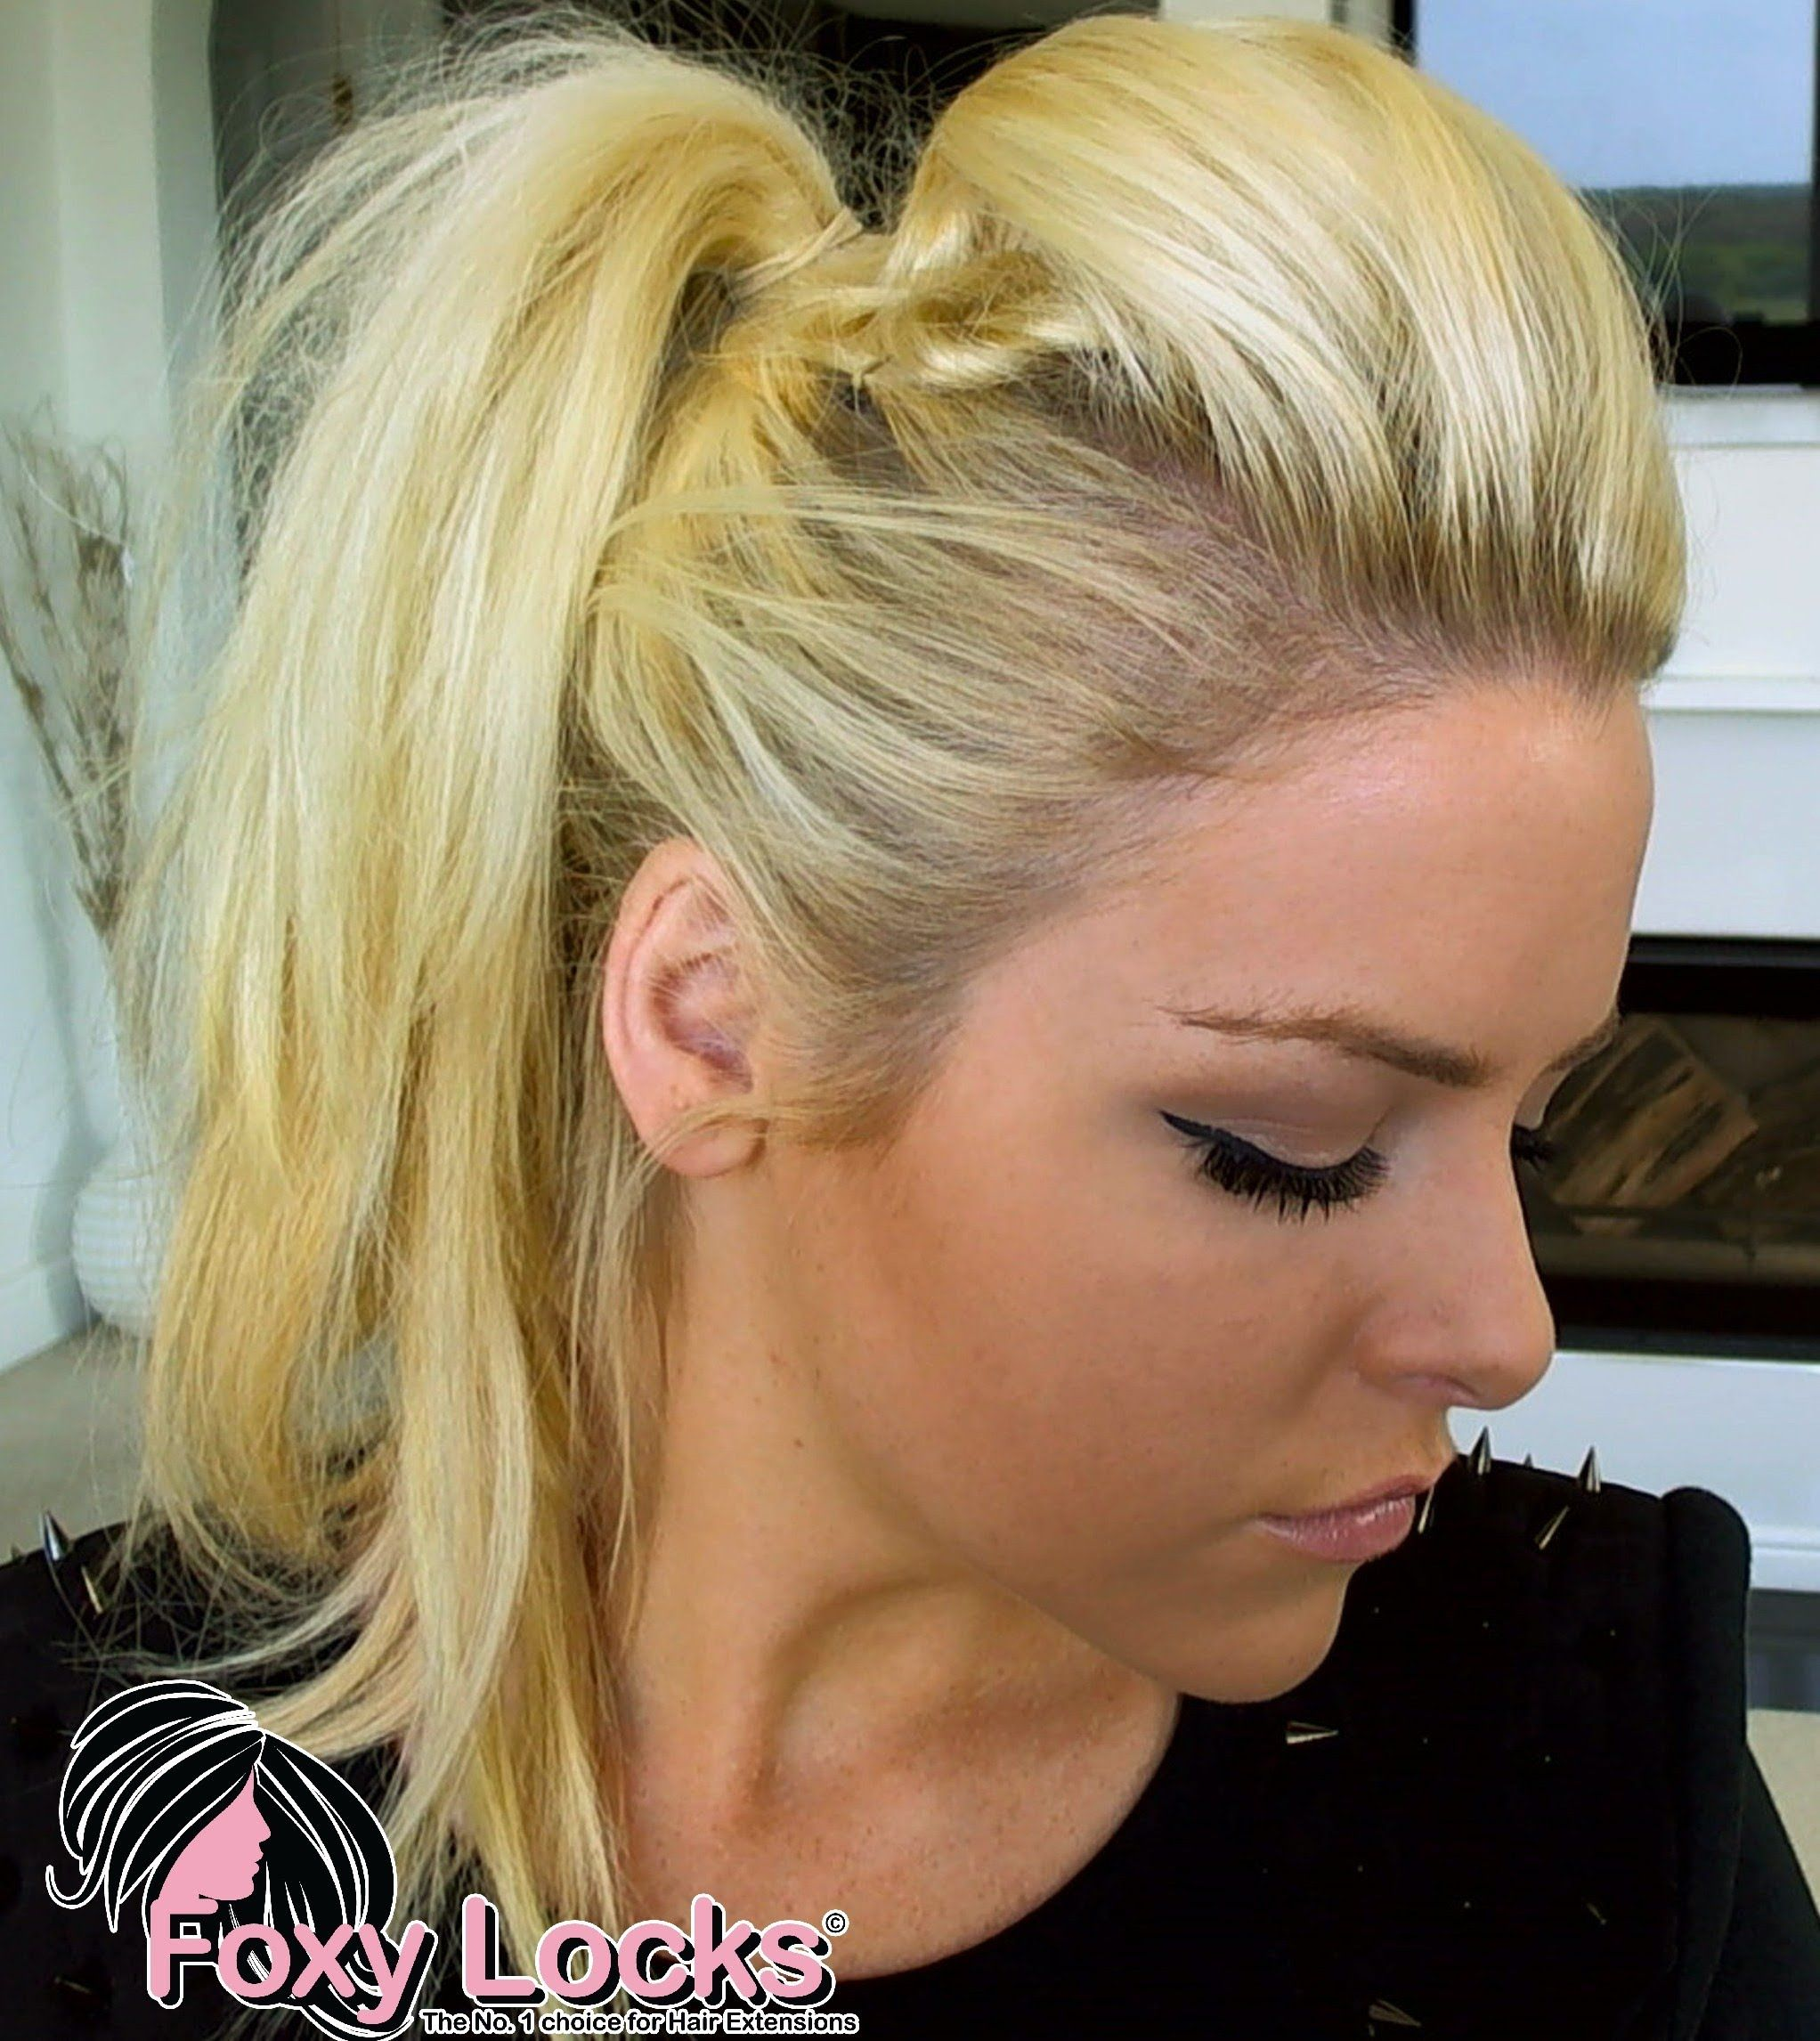 Pouf With Curls Reese Witherspoon Hair Bump Hairstyles Curly Hair Styles